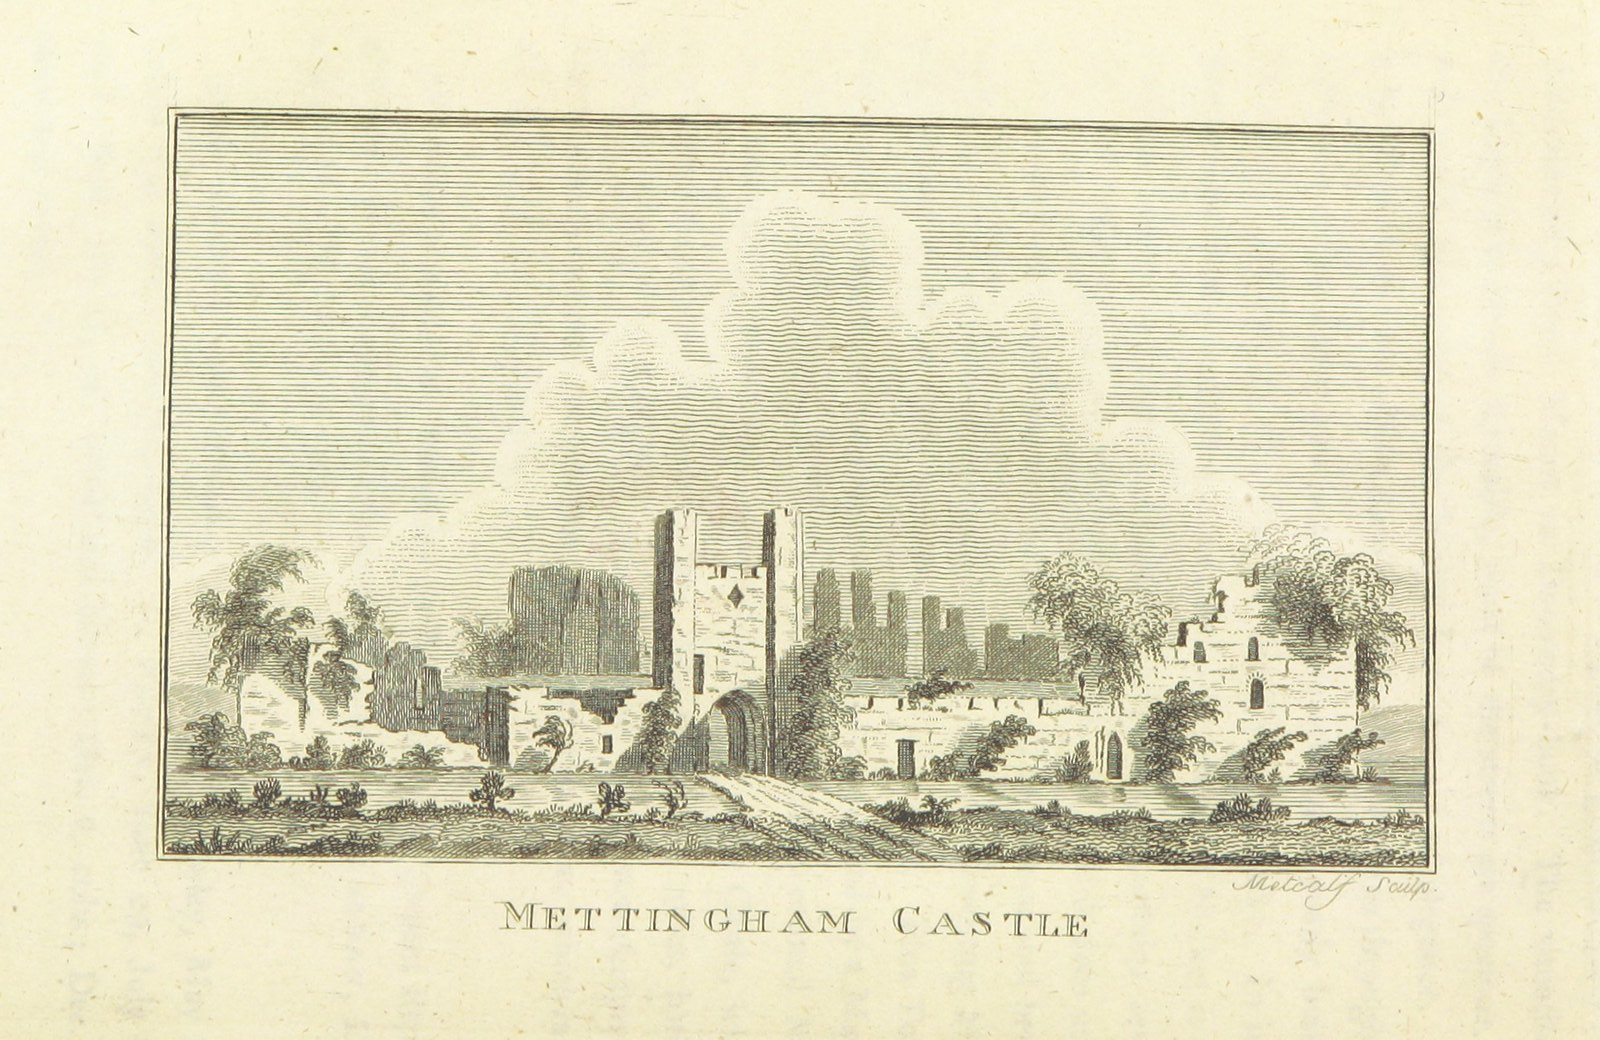 https://en.wikipedia.org/wiki/Mettingham_Castle (з колекції British library)